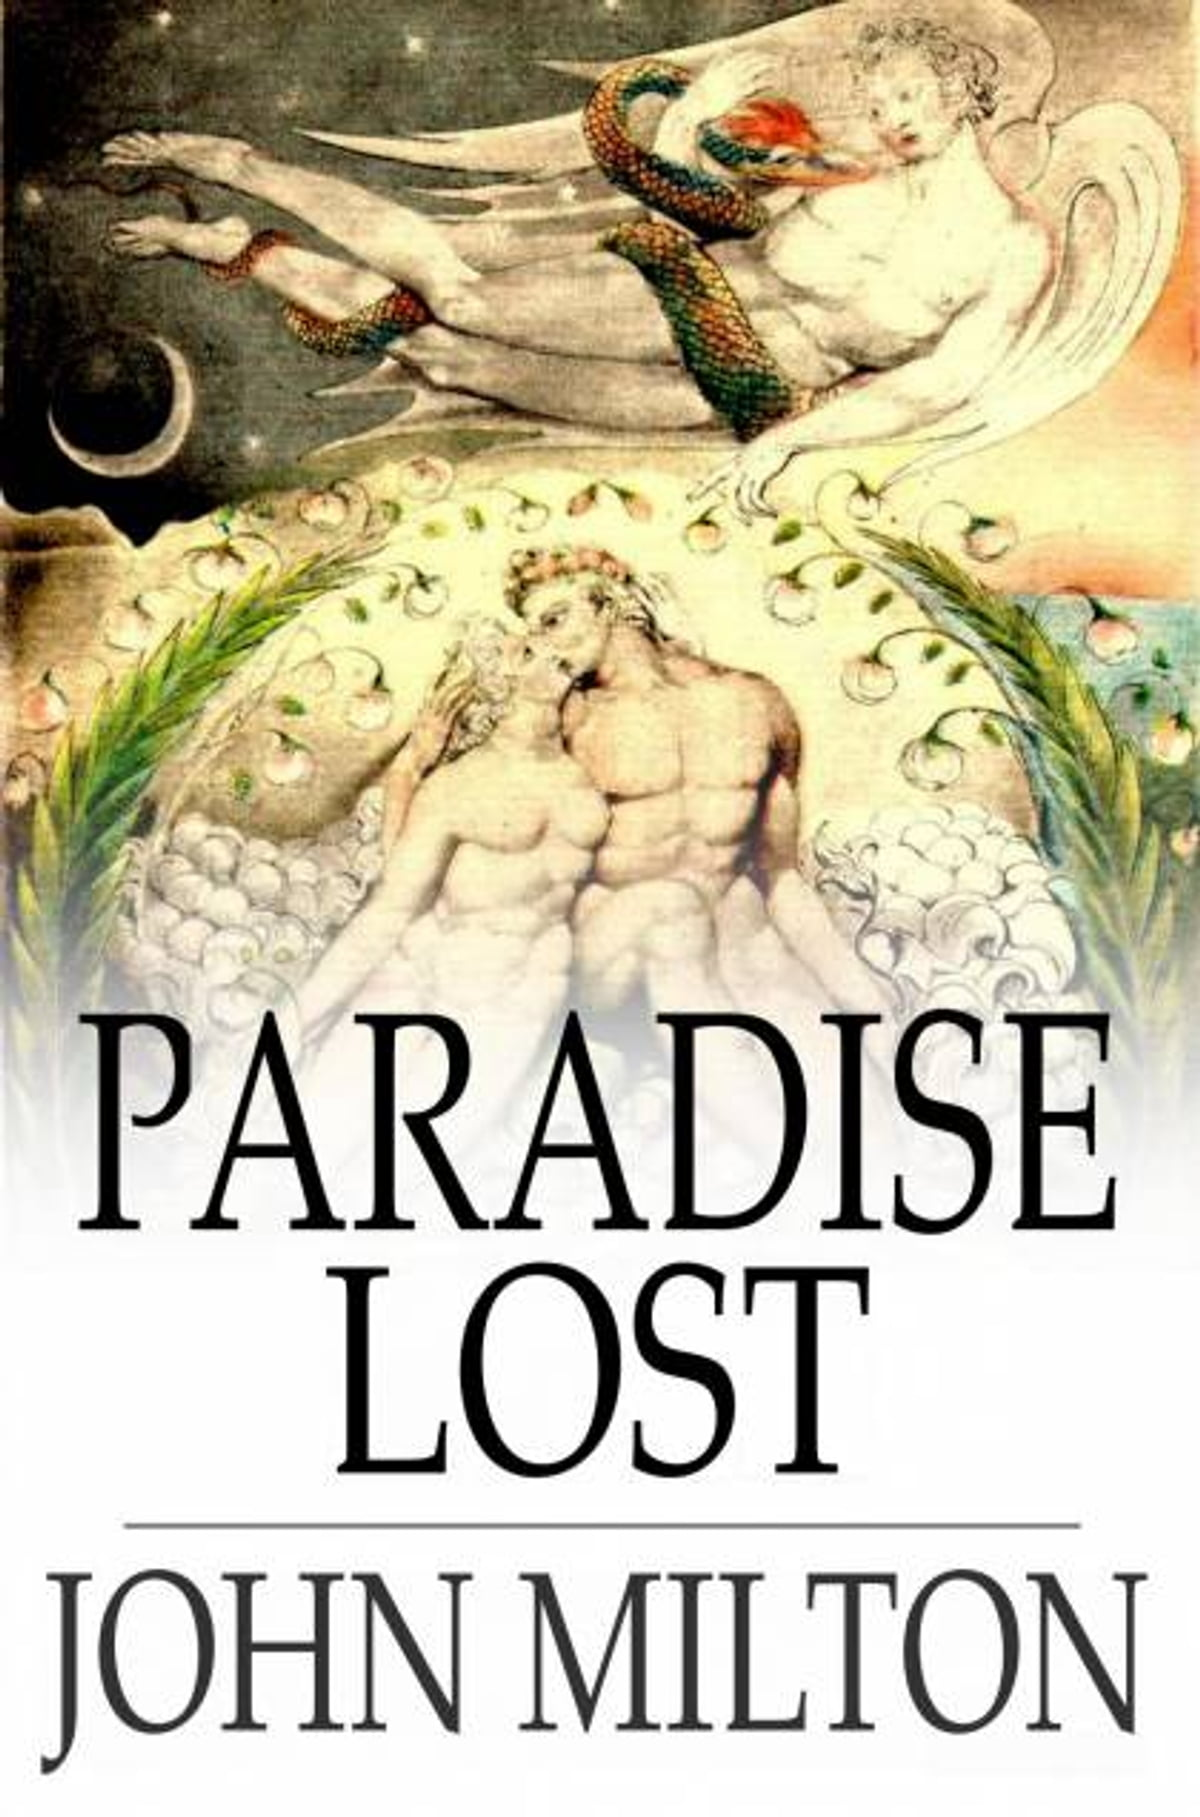 an analysis of the characters in the epic poem paradise lost by john milton Analysis of john milton's - paradise lost paradise lost is a monumental epic poem in twelve books of blank verse in paradise lost, john milton gives great eminence to the character of satan the author divides the characters in his epic poem into two sides: one side under god.